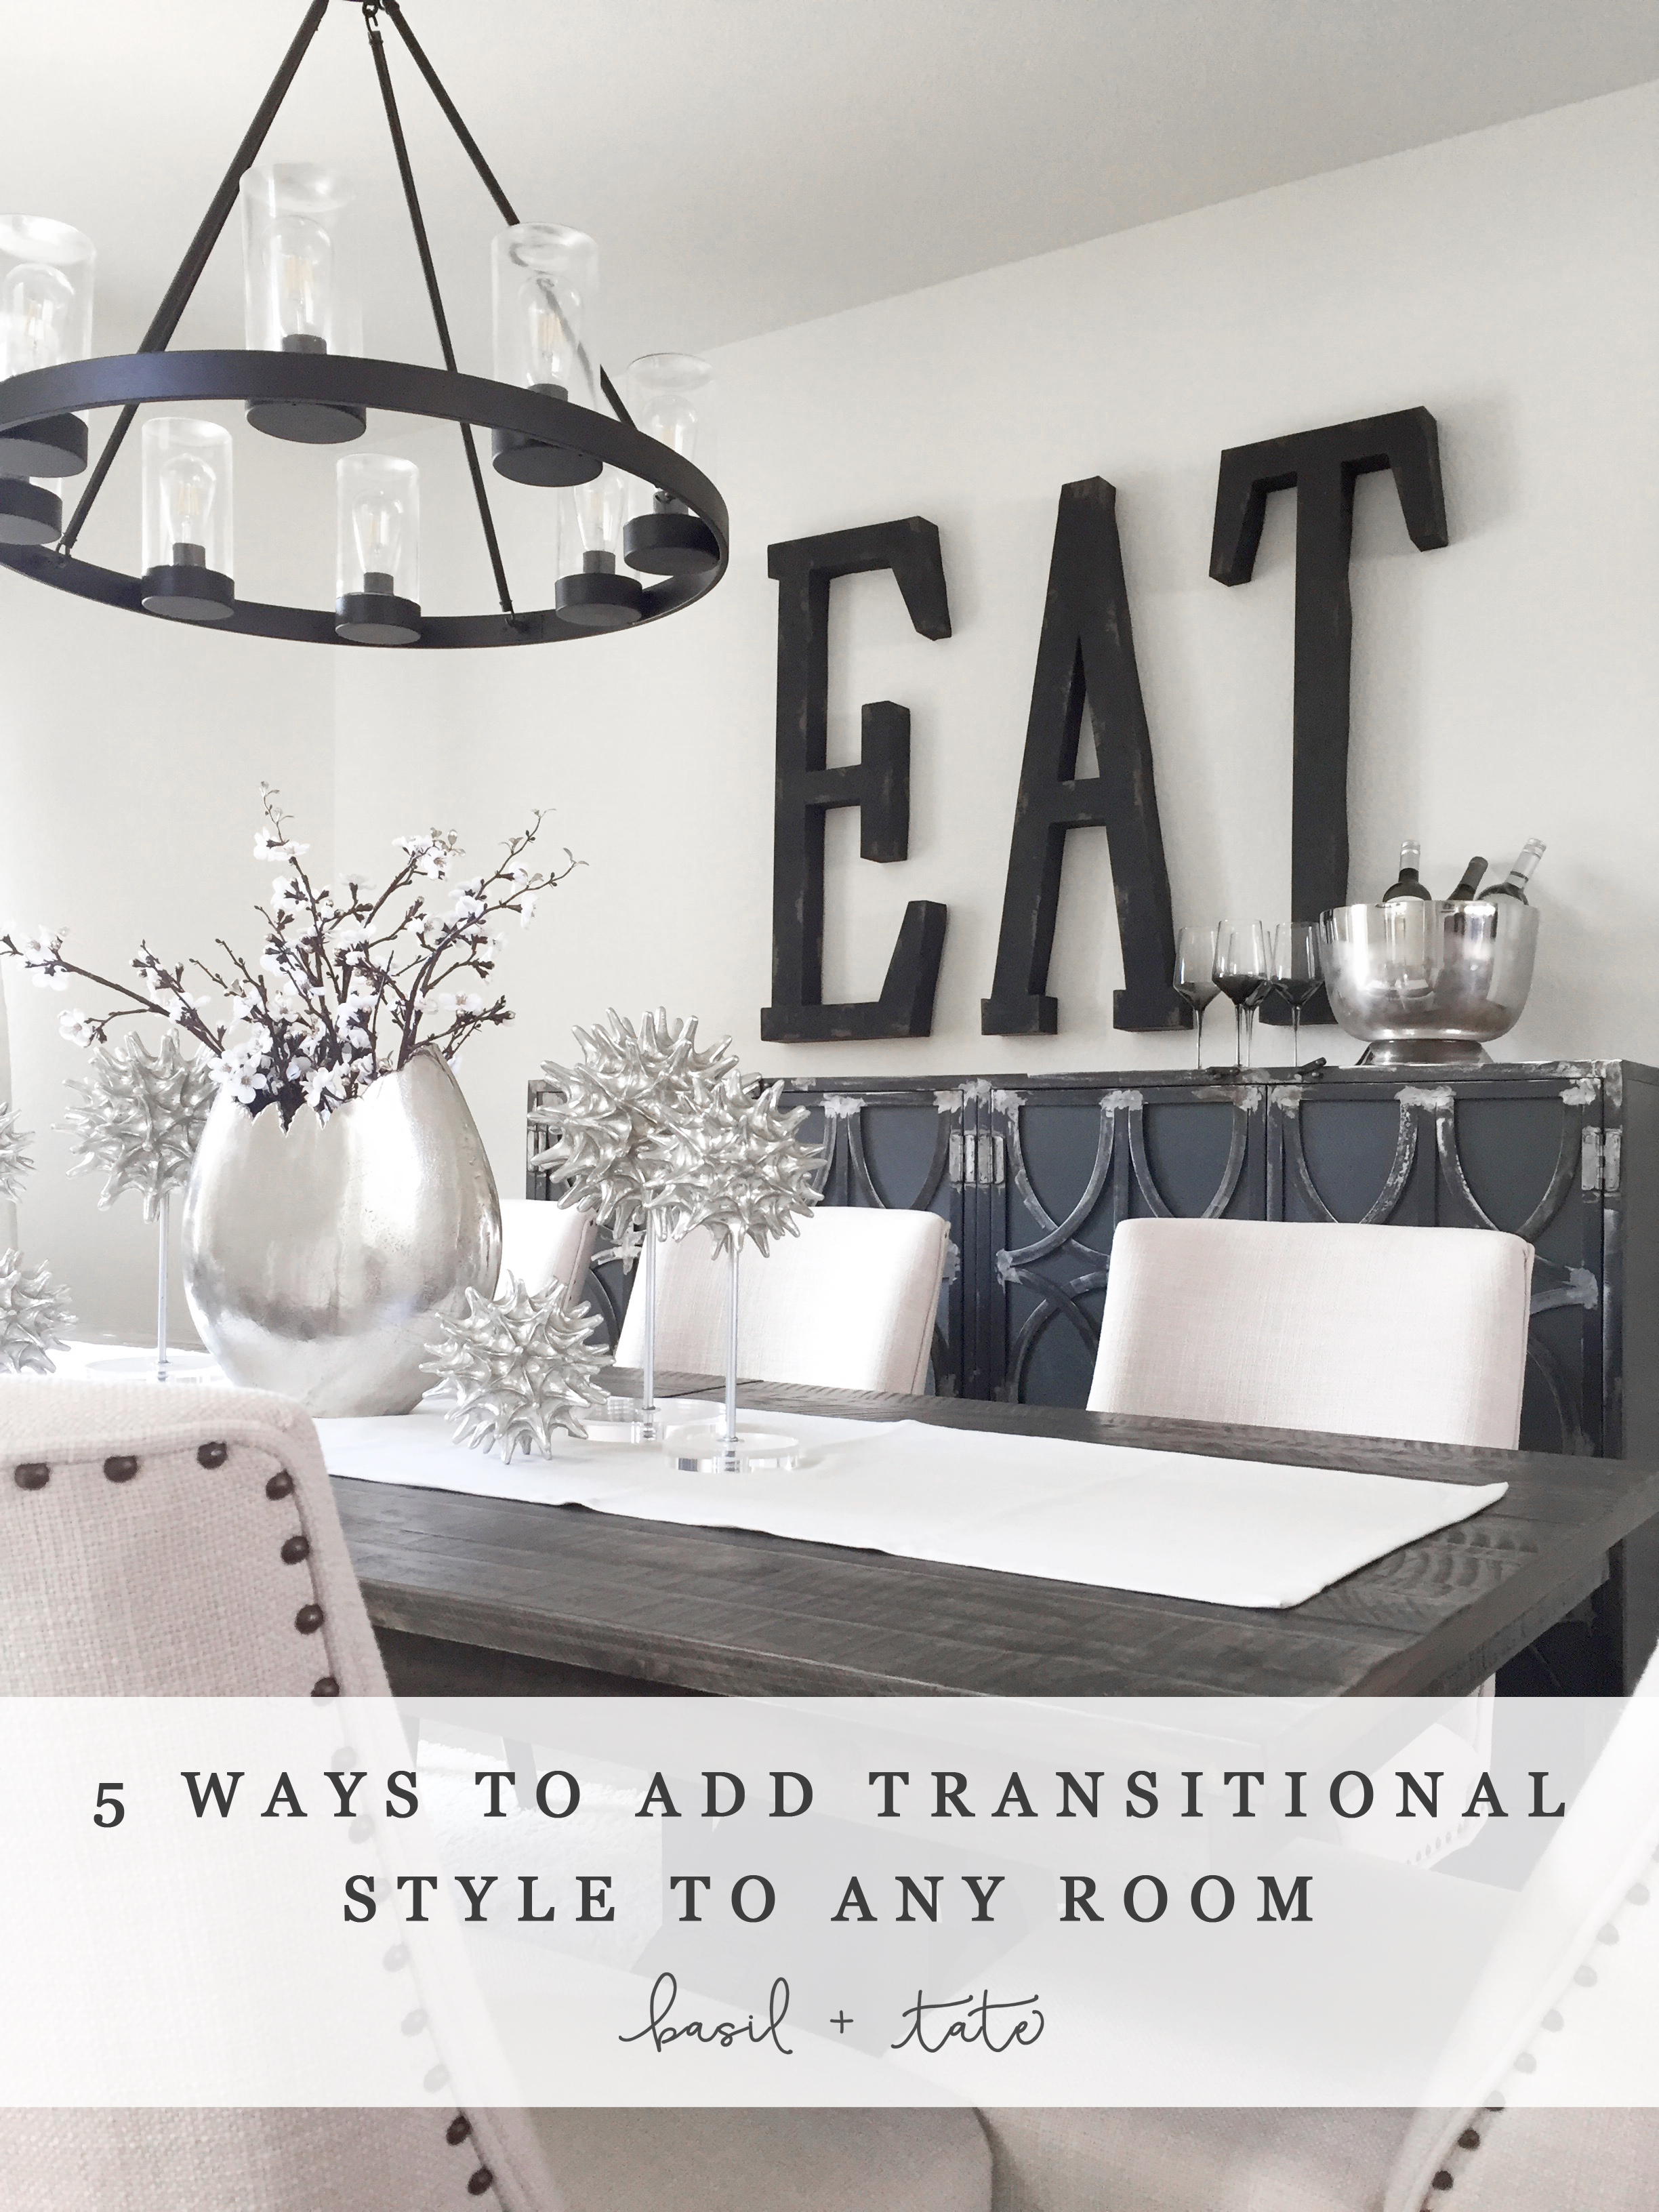 5 Ways To Add Transitional Style To Any Room Basil Tate